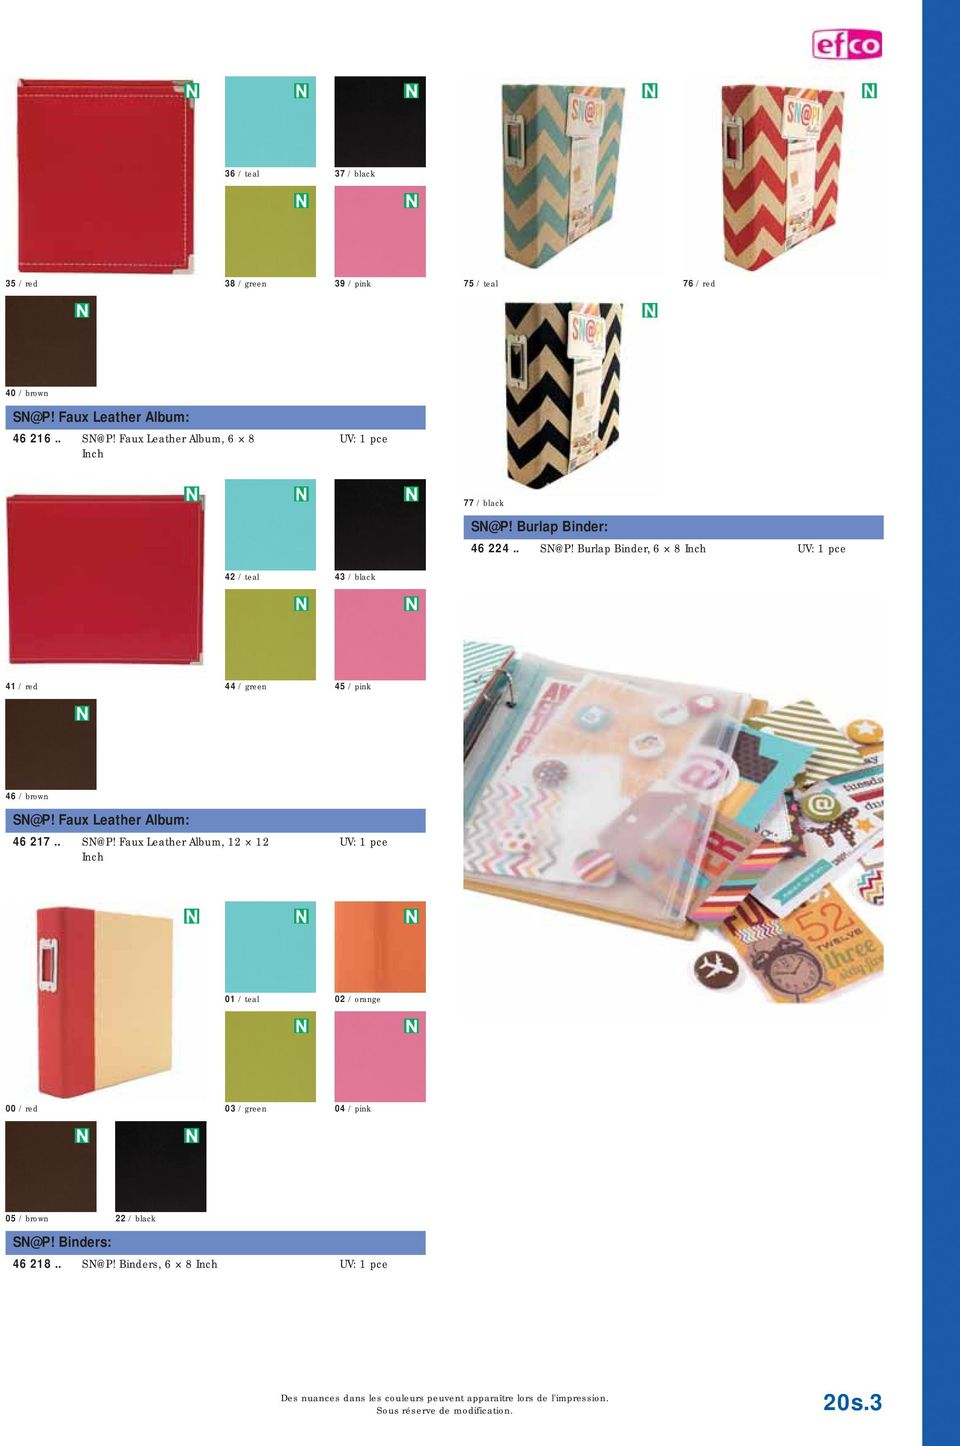 Faux Leather Album: 46 217.. SN@P! Faux Leather Album, 12 12 Inch UV: 1 pce 01 / teal 02 / orange 00 / red 03 / green 04 / pink 05 / brown 22 / black SN@P!